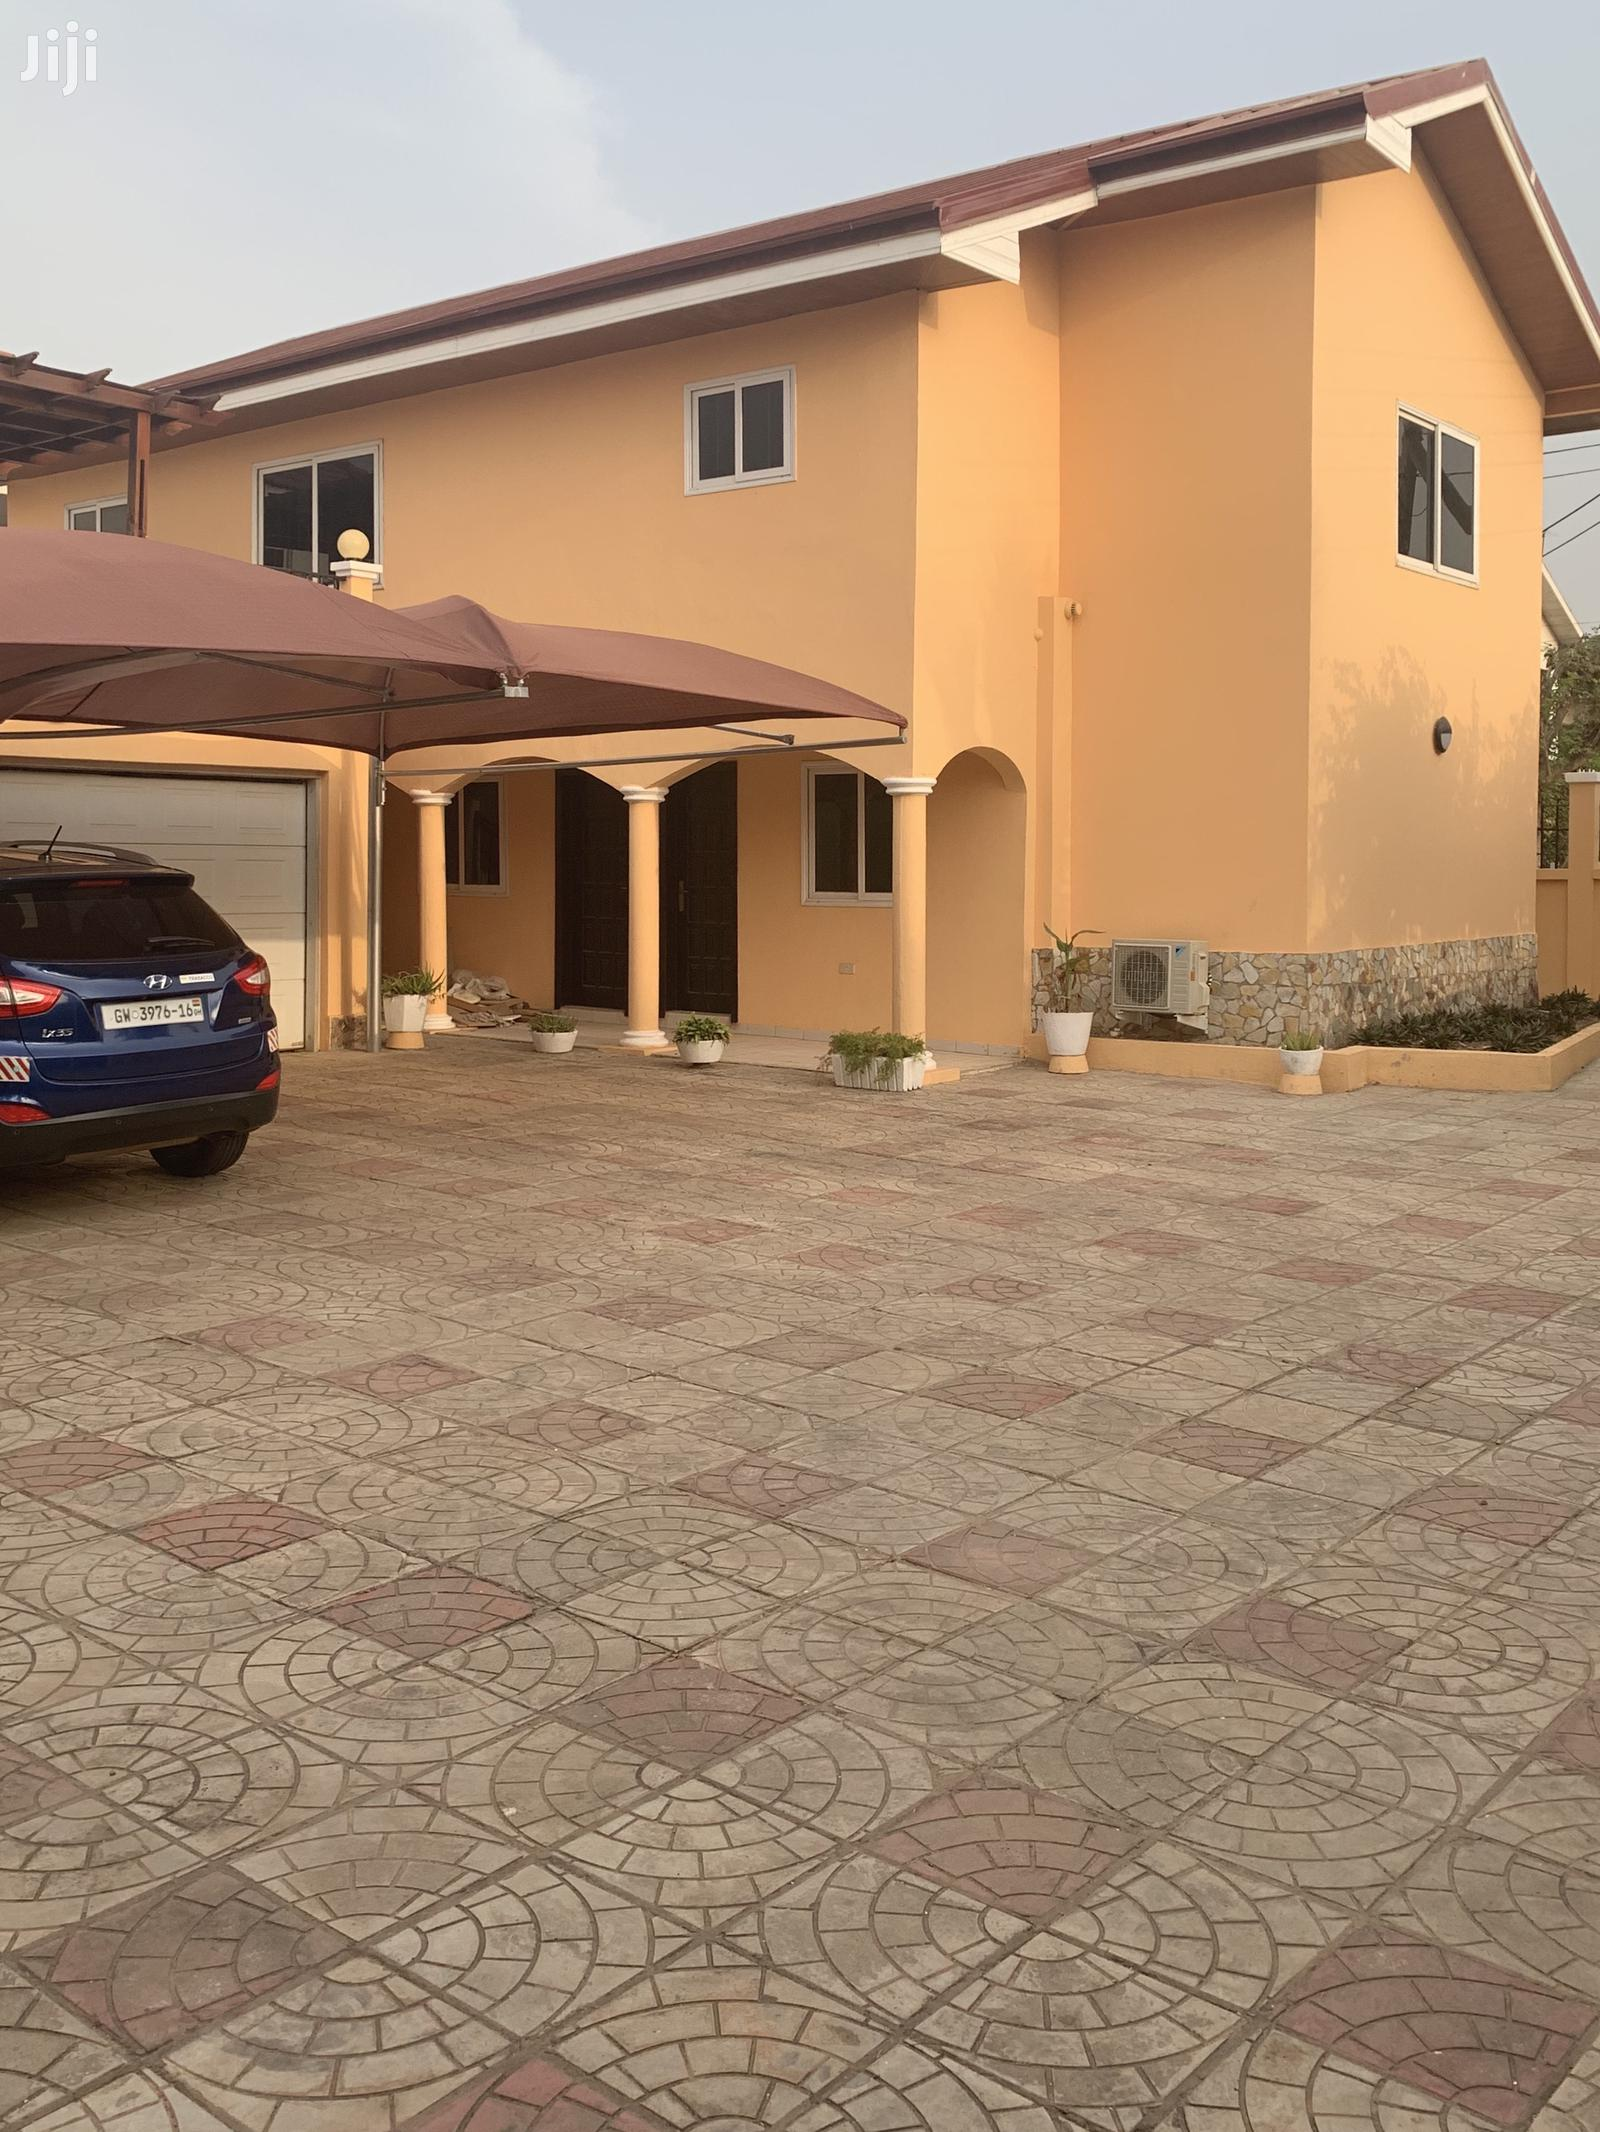 Executive 3-bedroom House At East Legon, Accra | Houses & Apartments For Rent for sale in East Legon, Greater Accra, Ghana